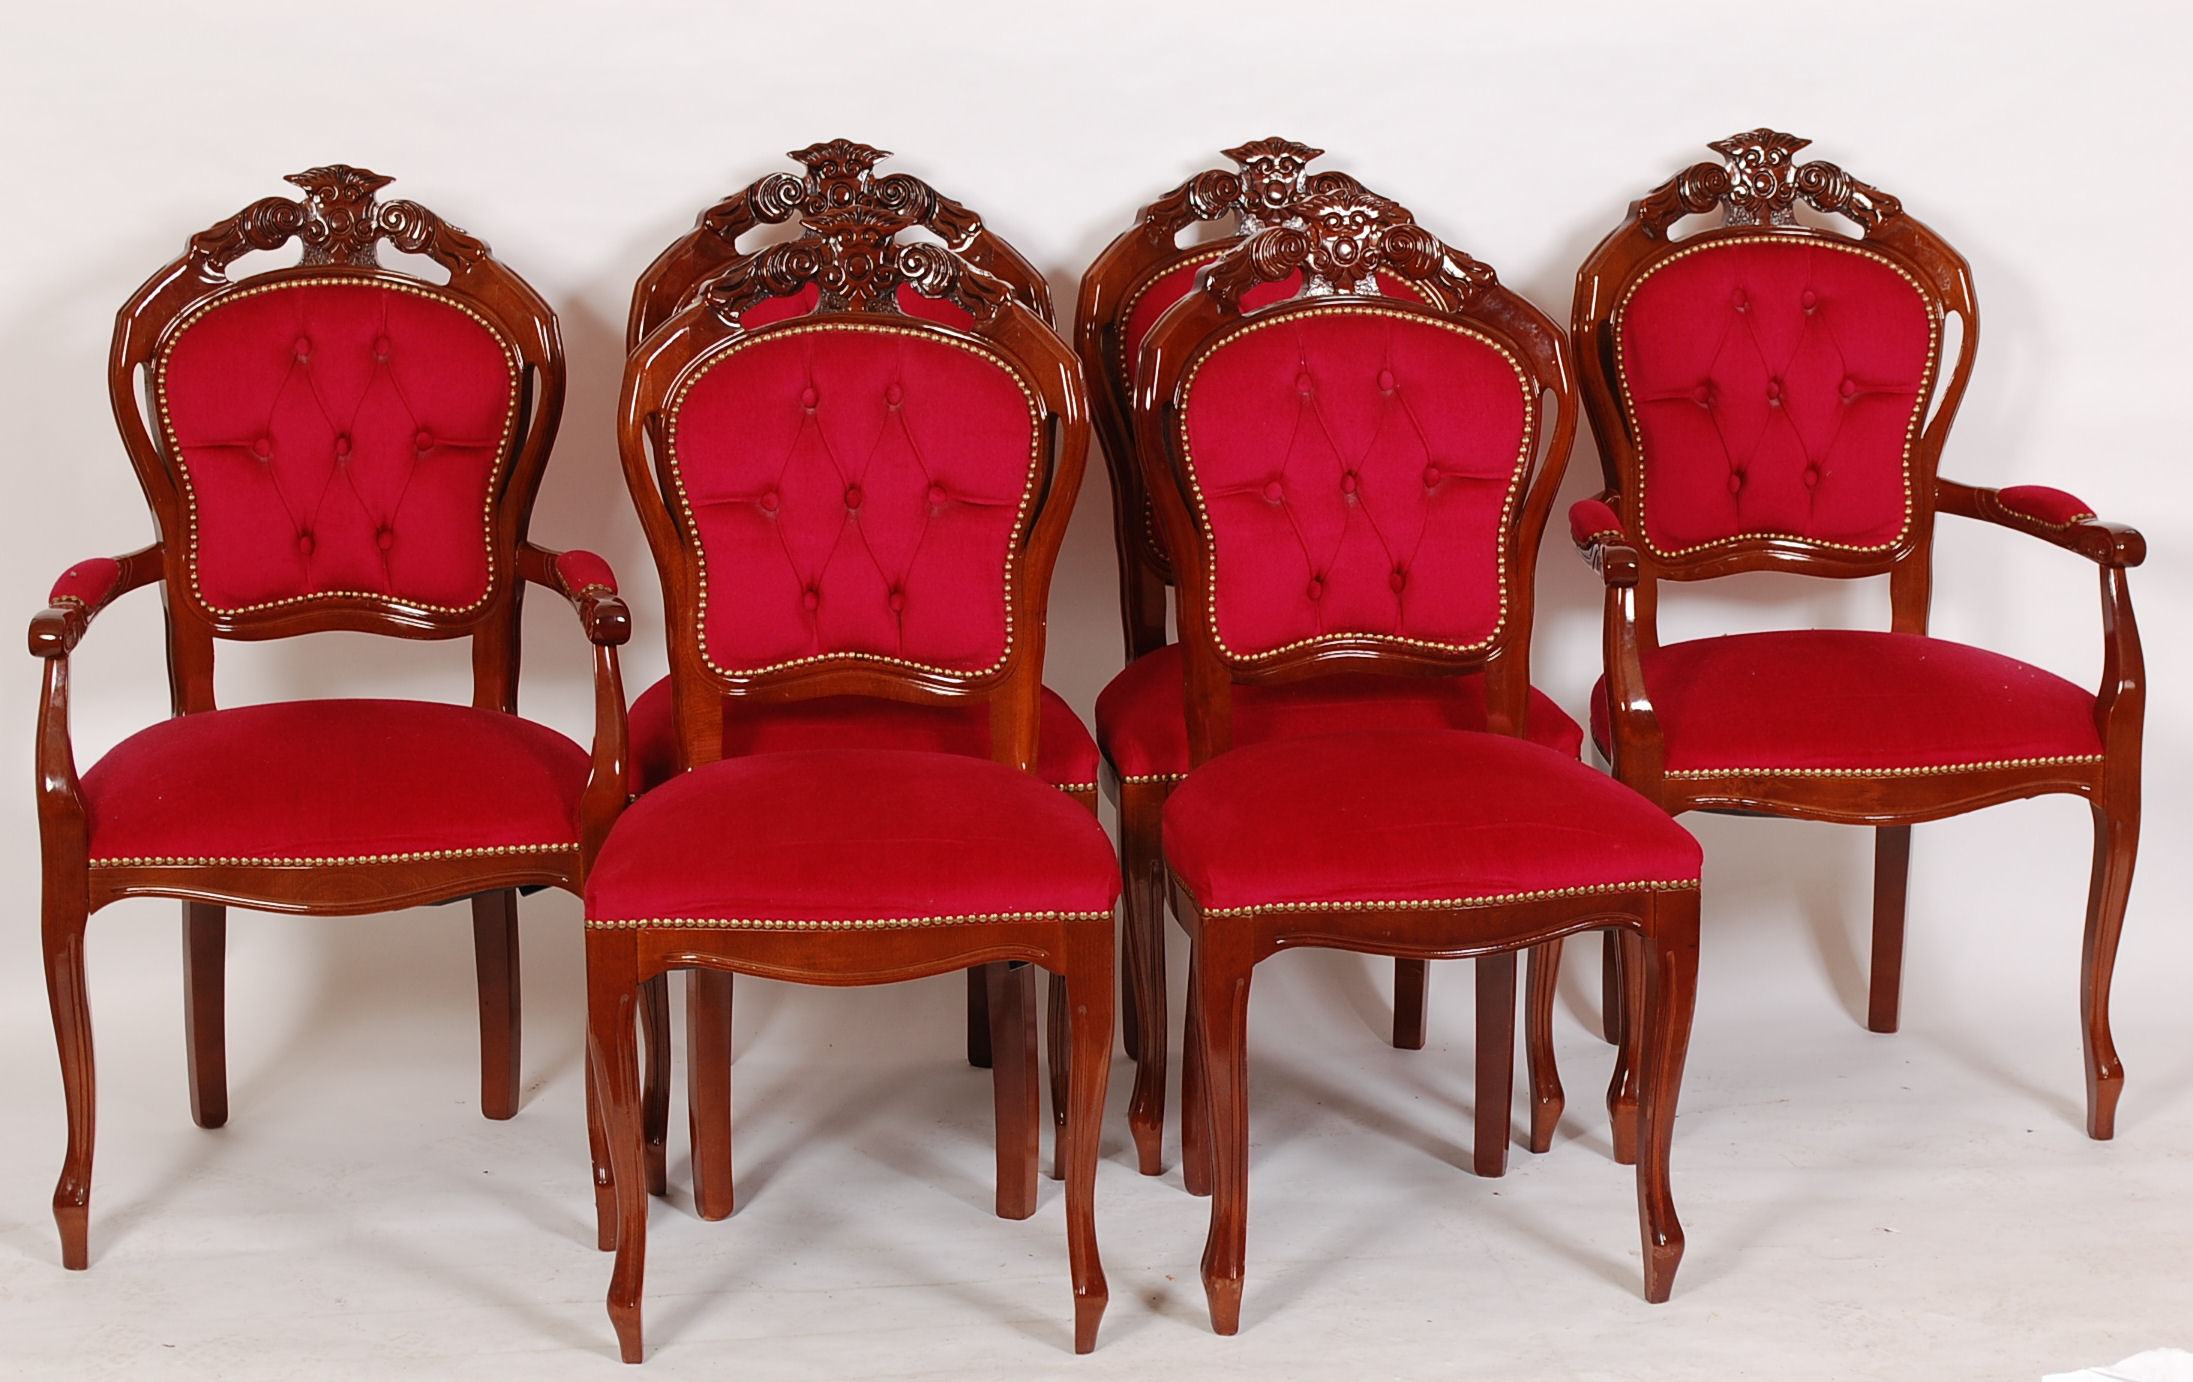 A set of 6 Italian Rococo dining chairs raised on shaped legs with